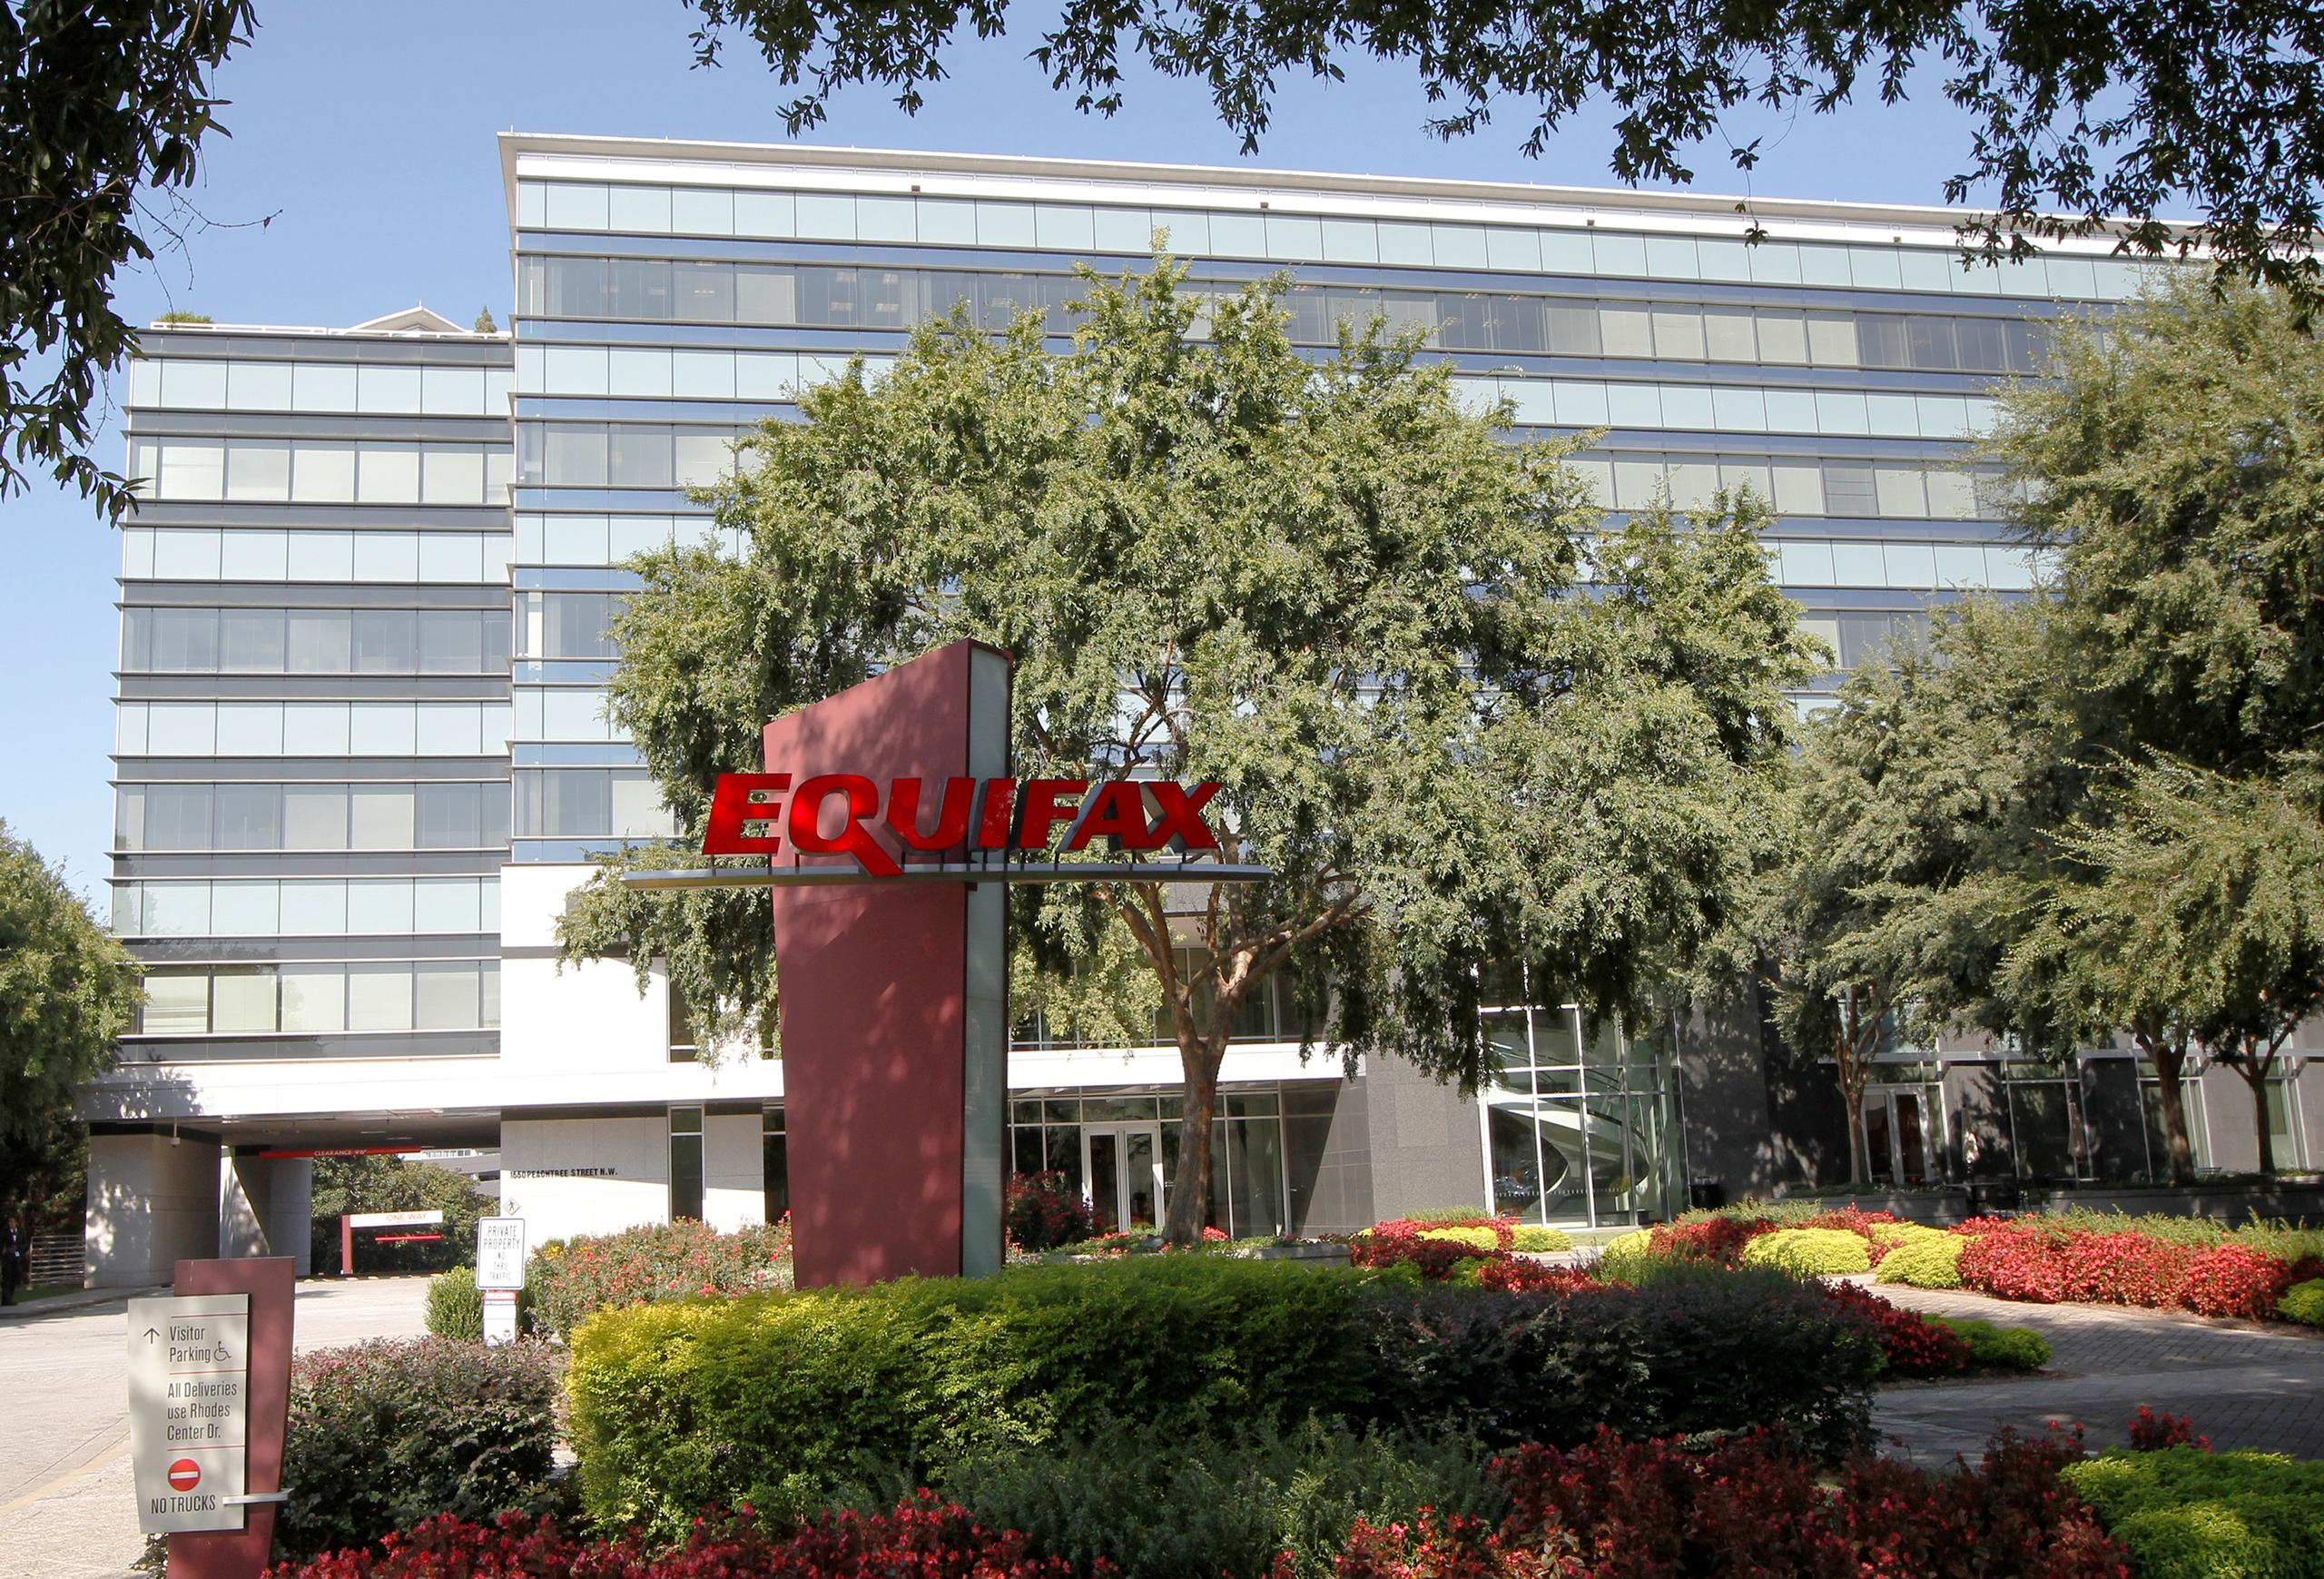 Equifax slumps after data breach likely hit 143 million consumers